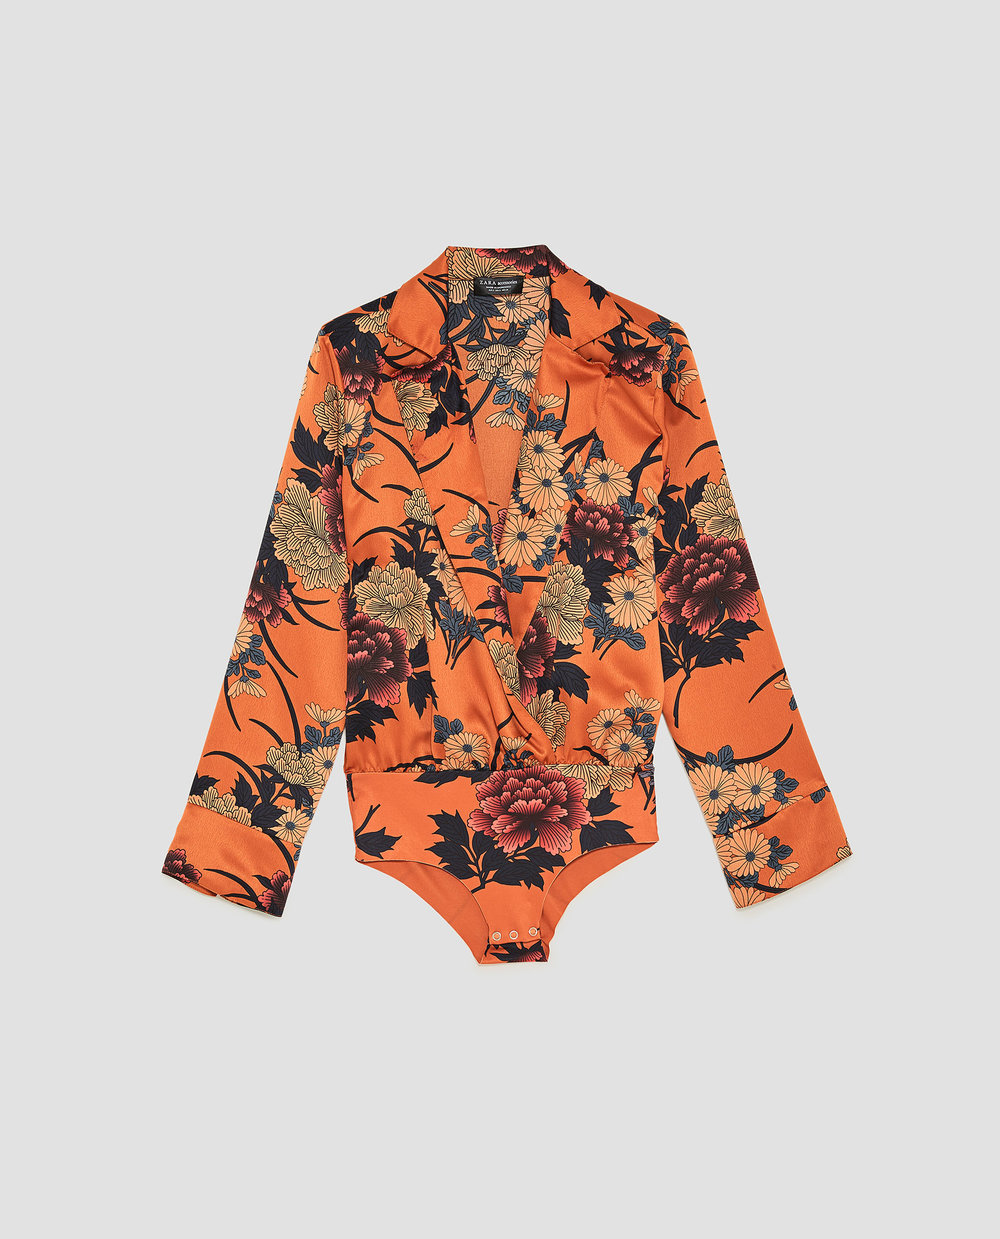 a bodysuit under the asian influence Printed Sateen Bodysuit / $50 / Zara